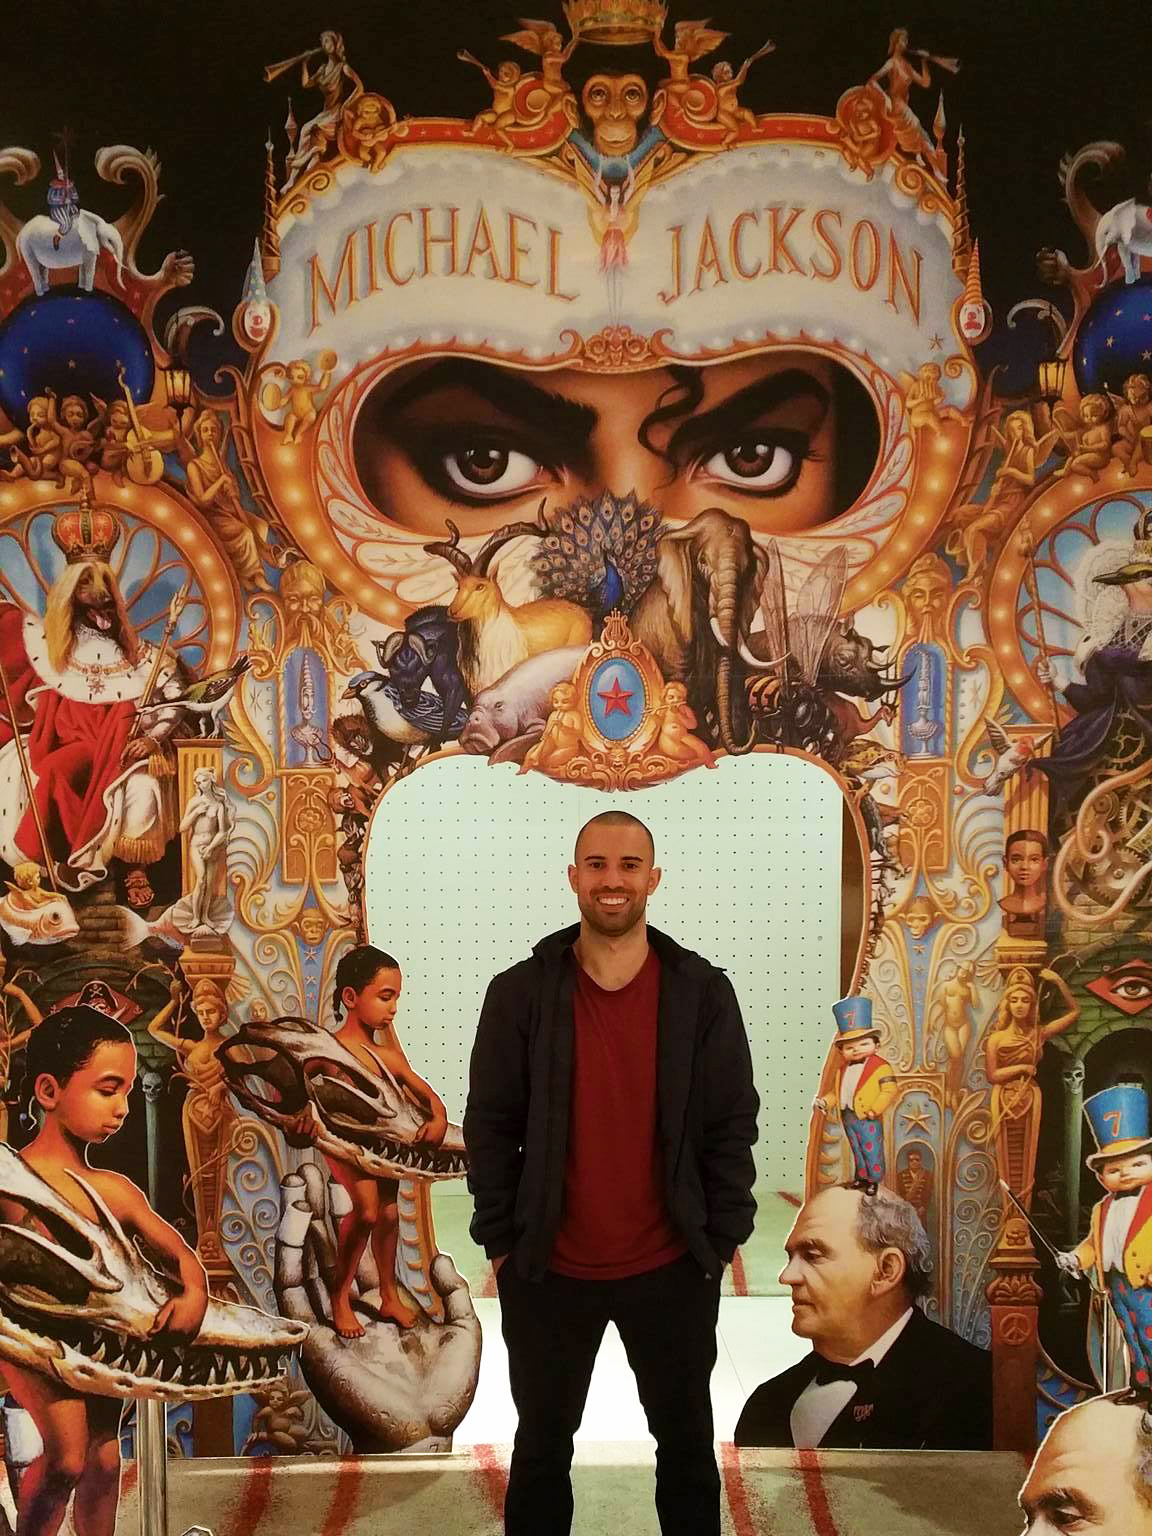 -Kingvention-Daniel-Brooks-Art-Artist-Studio-Exhibition-Painting-Gallery-The-MJ-Series-Michael-Jackson